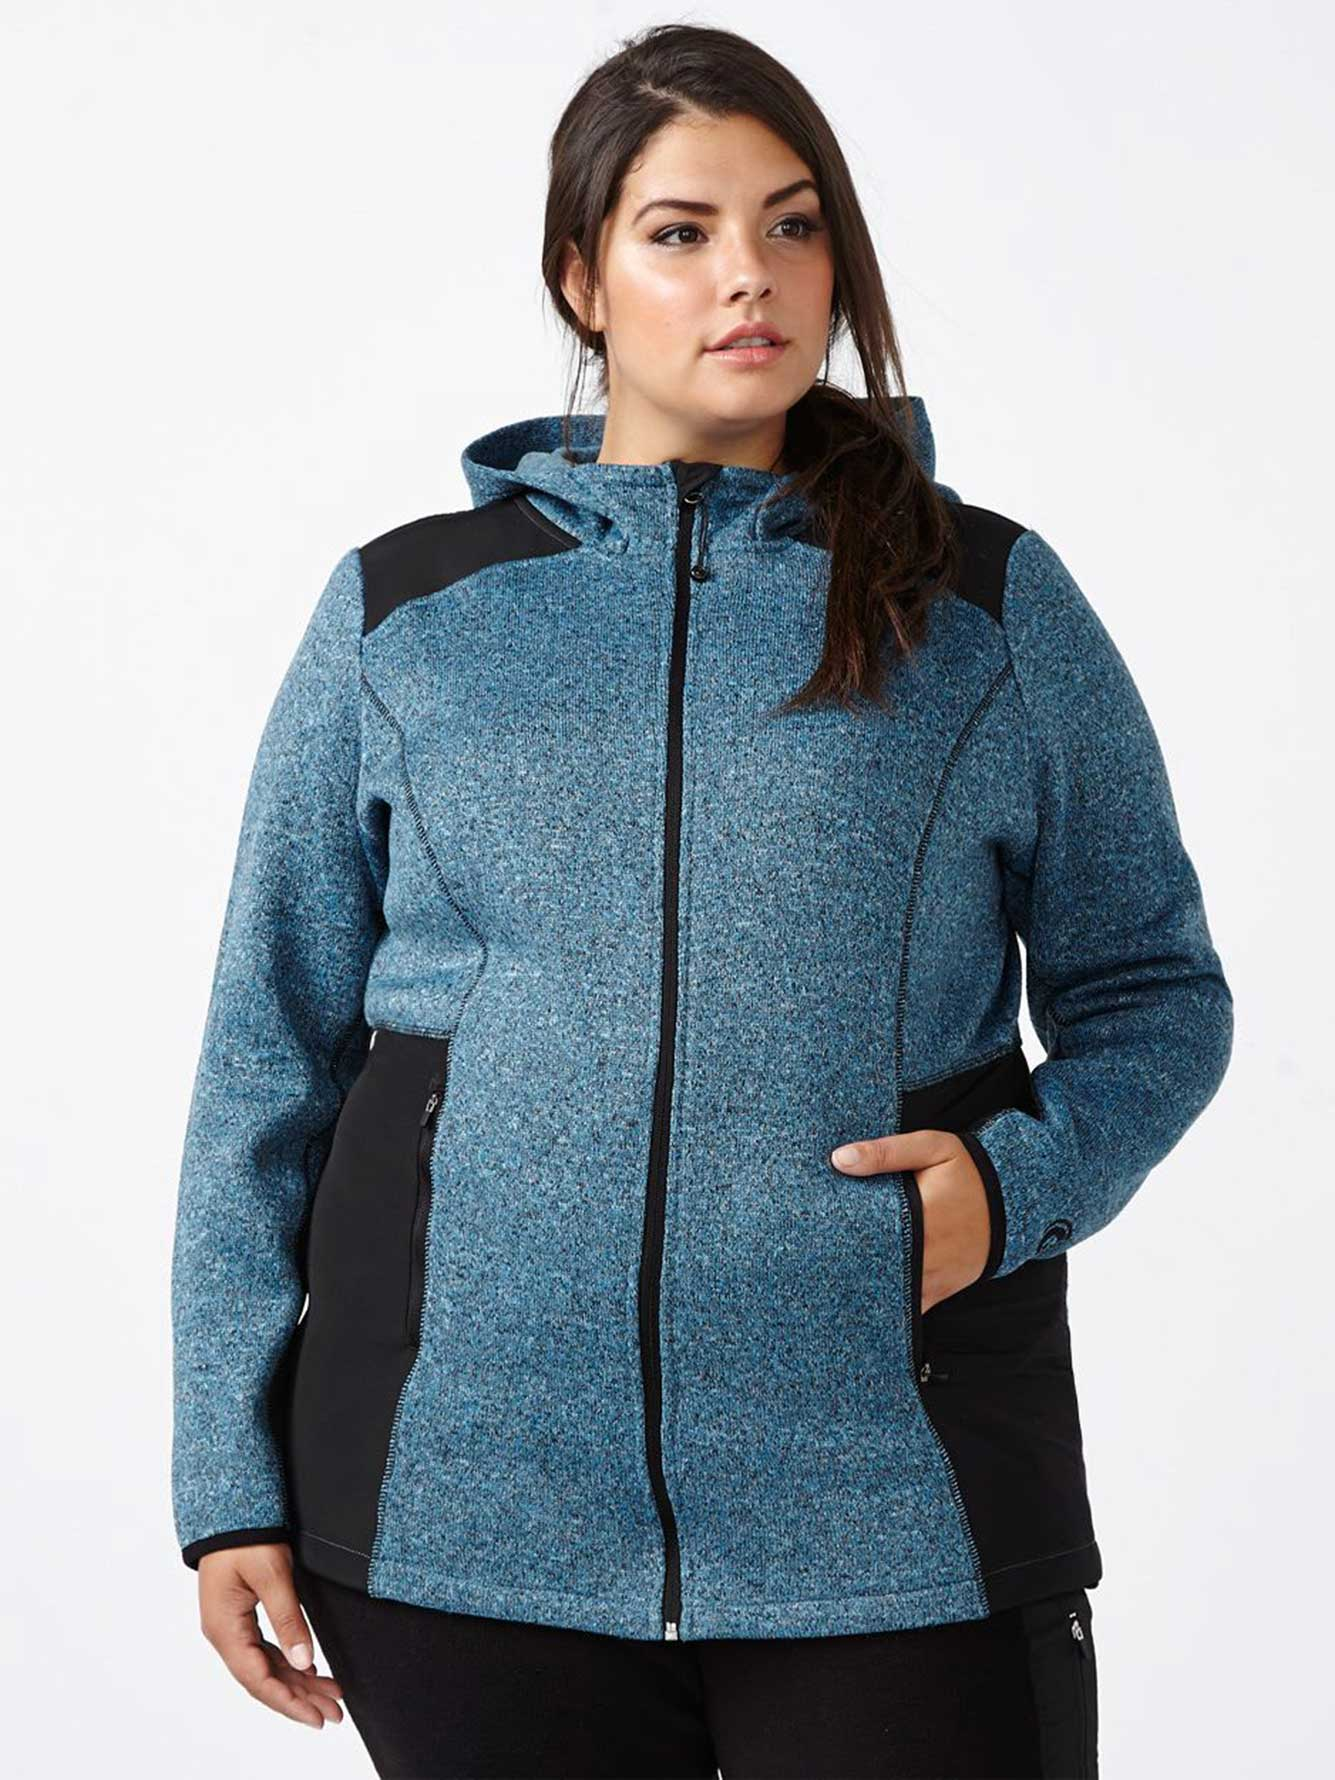 Xersion Lightweight Fleece Jacket Girls. Add To Cart. New Earn Rewards Points · % Off Boots · 60% Off Outerwear · Free Shipping to StoresTypes: Dresses, Tops, Jeans, Activewear, Sweaters, Jackets, Maternity.